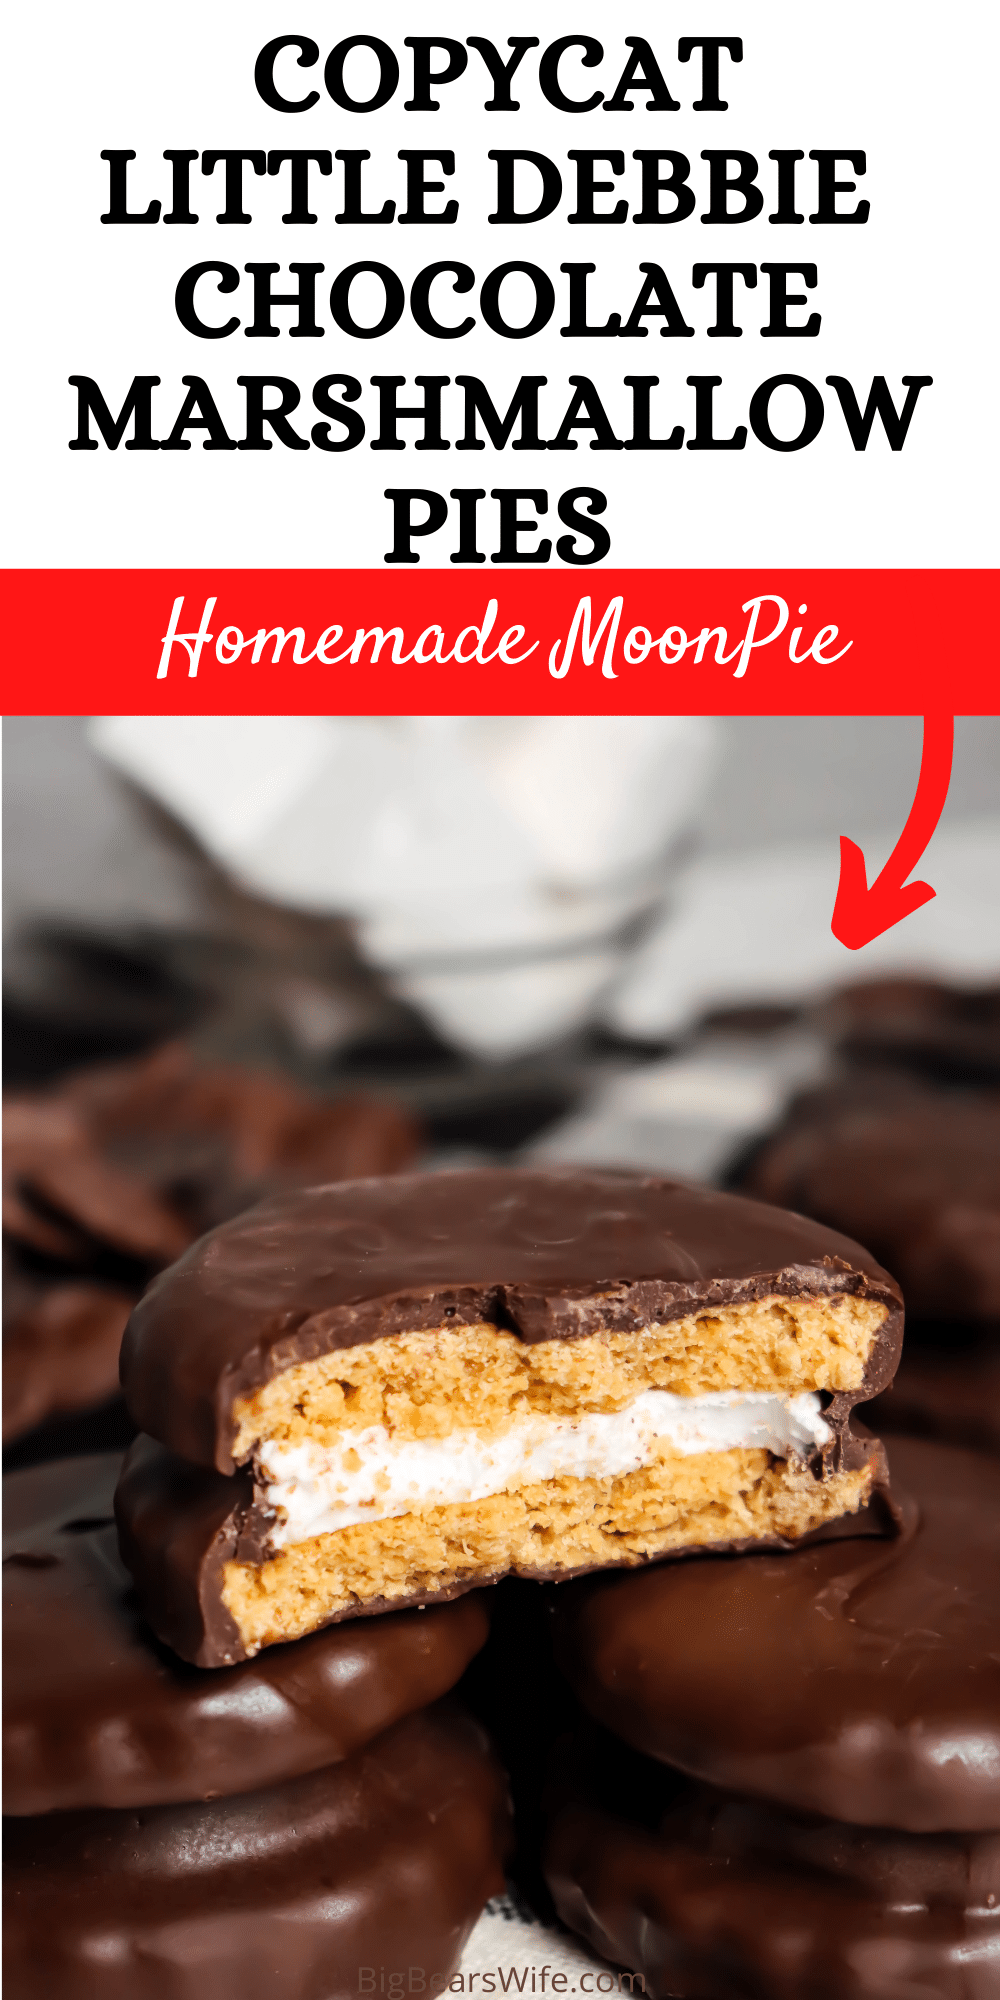 These Homemade Chocolate Marshmallow Pies are made to be just like the Little Debbie Chocolate Marshmallow Pies that you find in the grocery store! Only these might be even better! via @bigbearswife